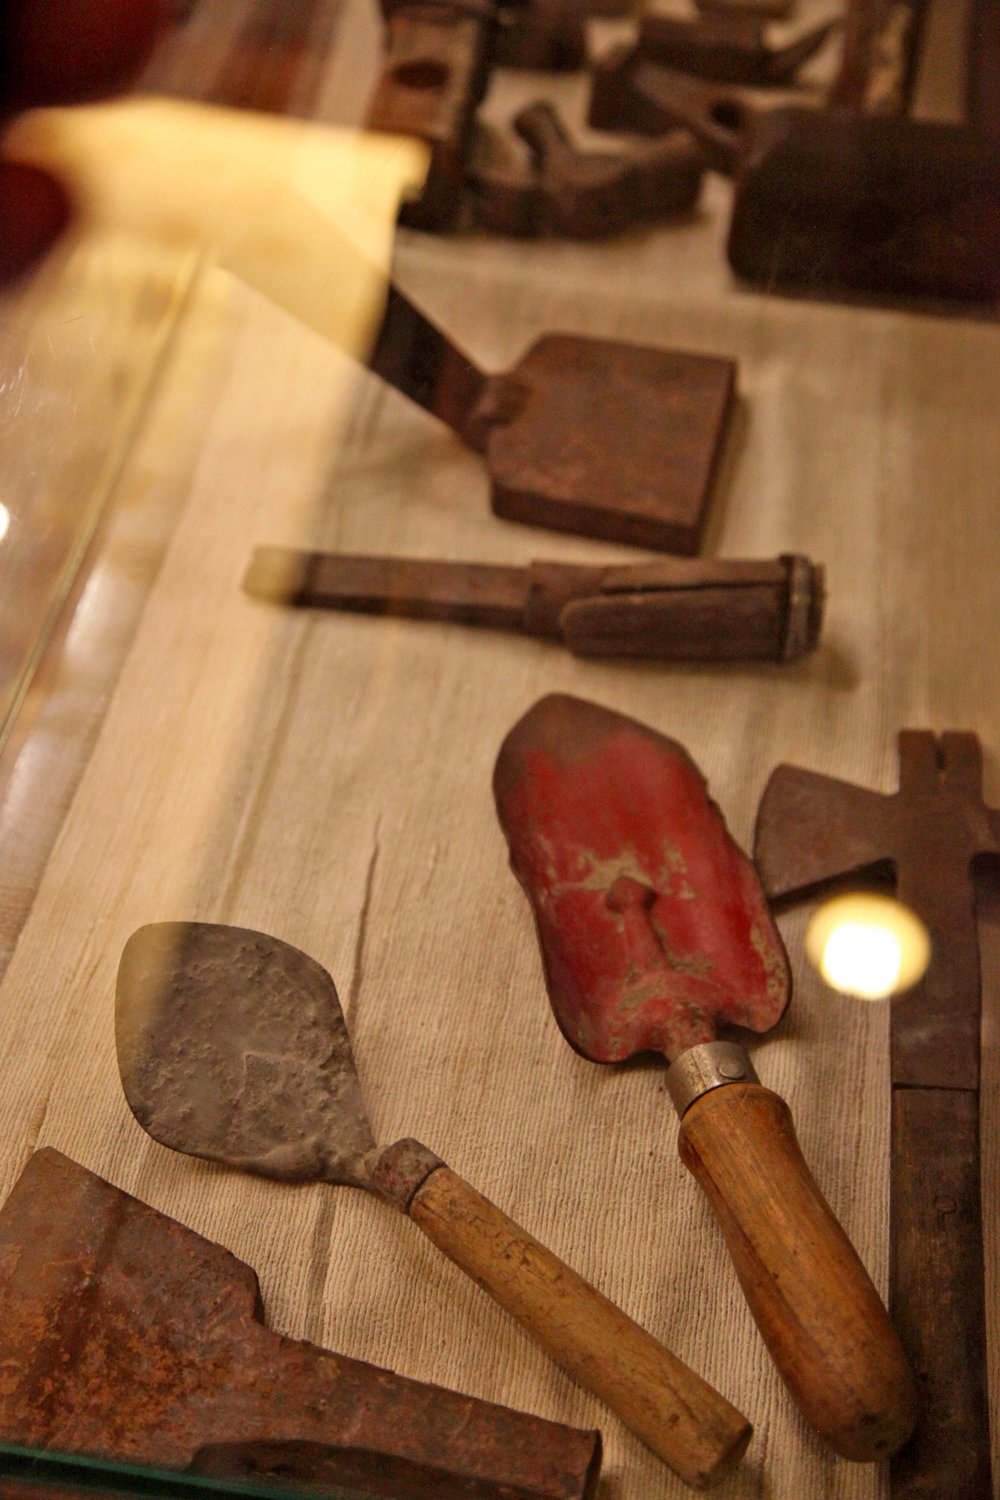 A sampling of tools used to build the temple.